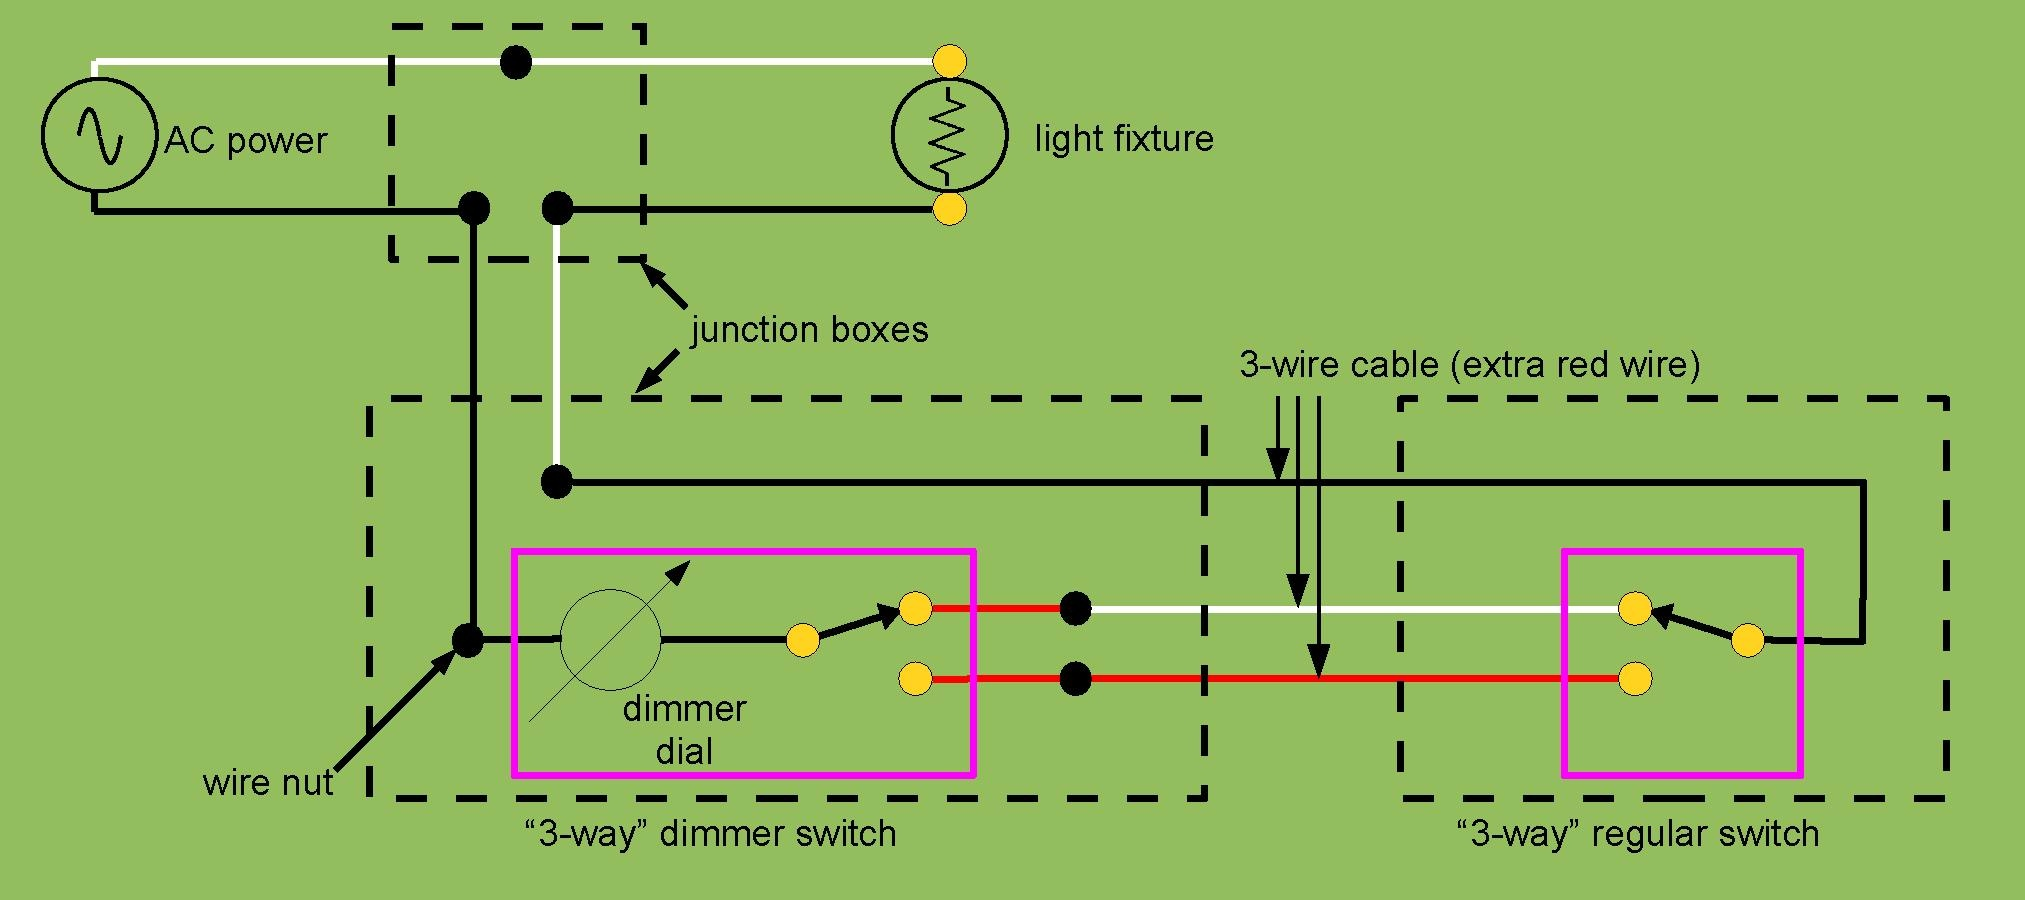 3 Way Switch With Dimmer Wiring Diagram : File way dimmer switch wiring pdf wikimedia commons